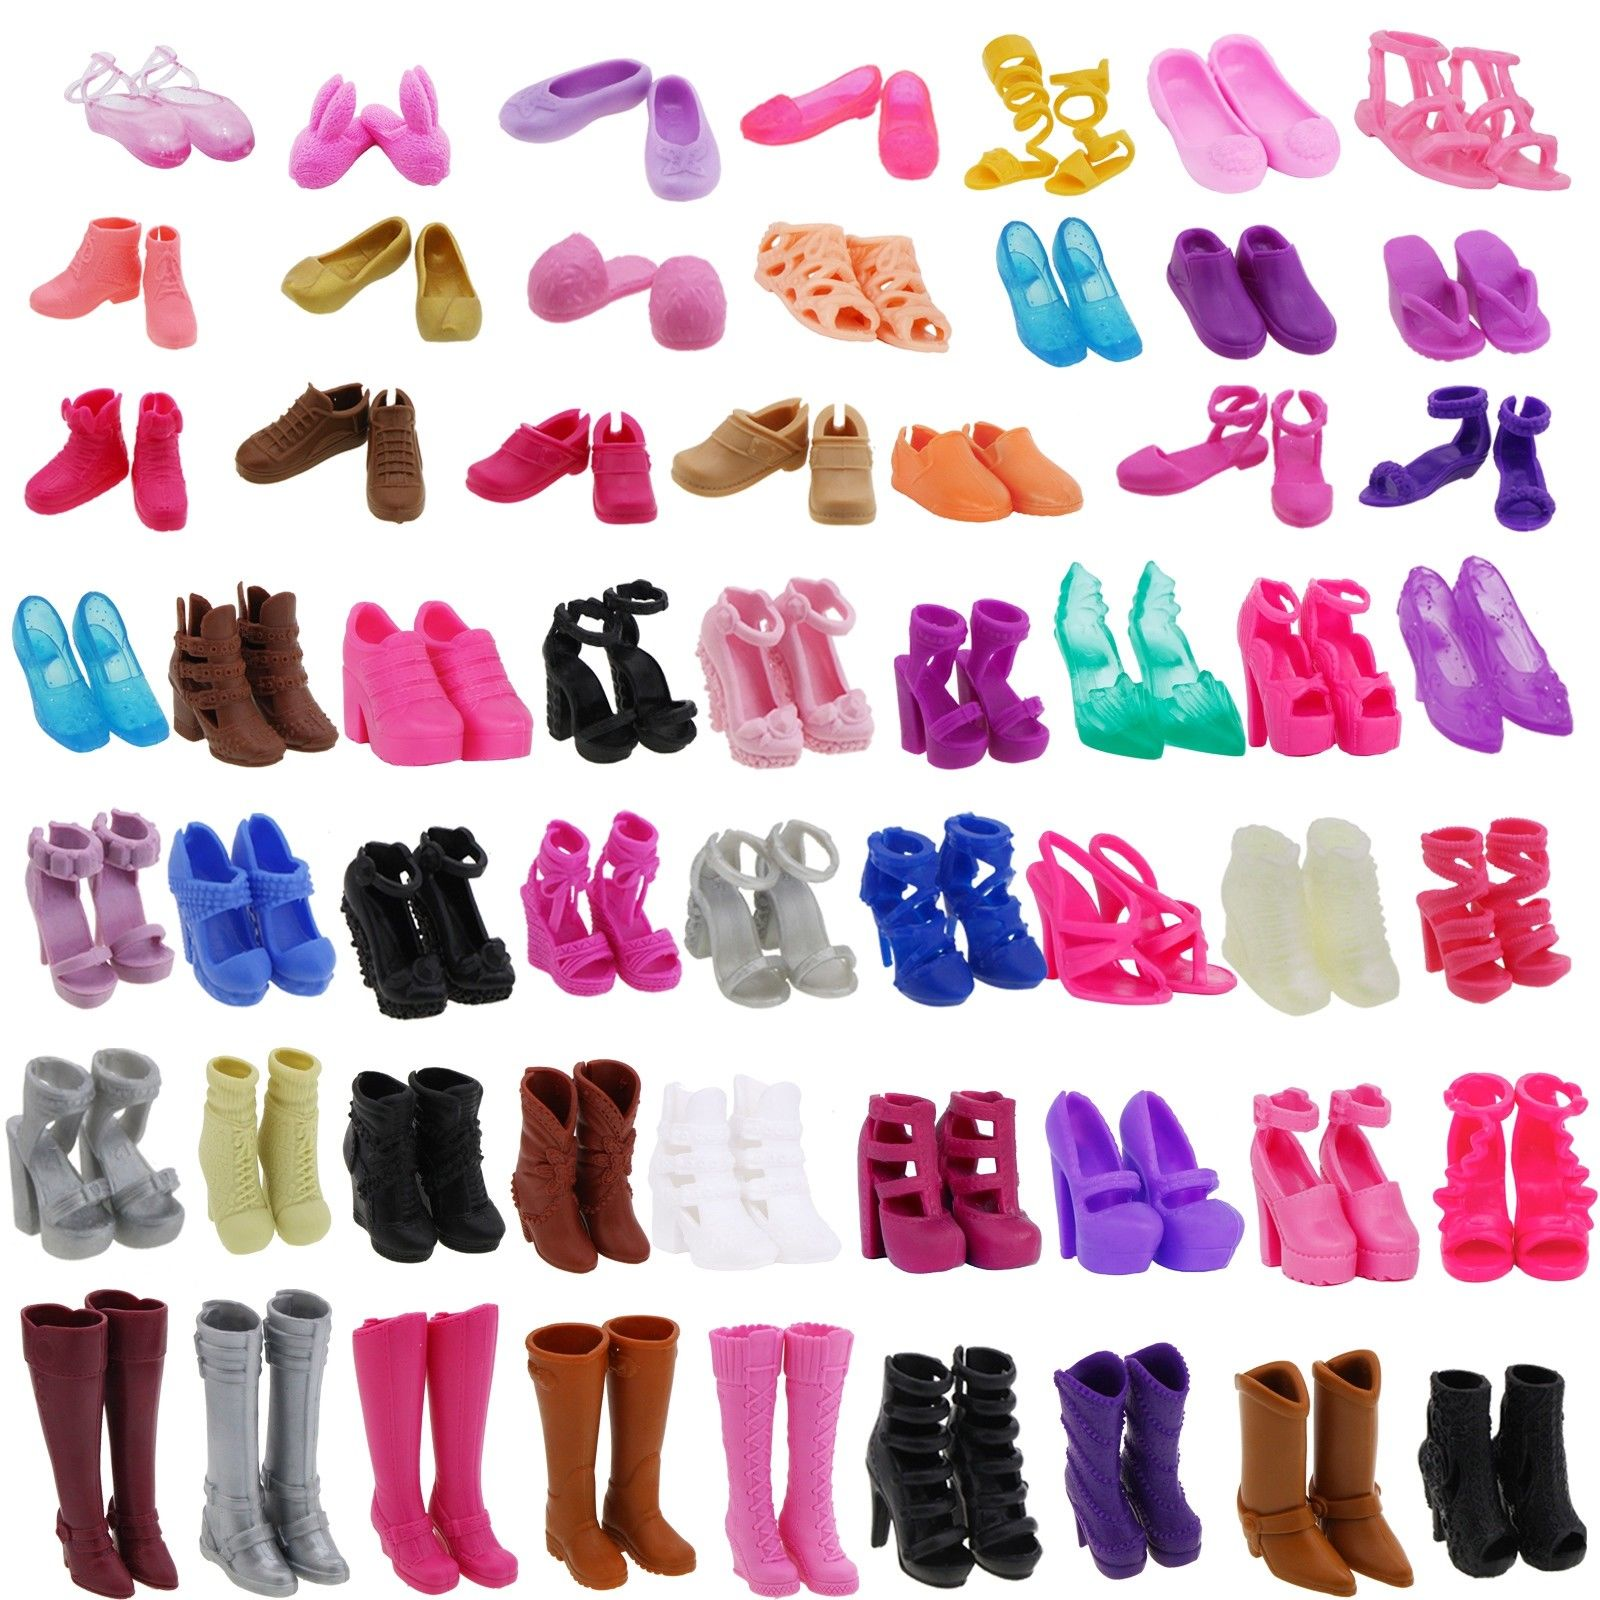 437d3032db4 Random 20 Pairs Lady High Quality Fashion Boots Flats High Heel Sandals  Dinner Party Clothes Accessories Shoes For Barbie Doll